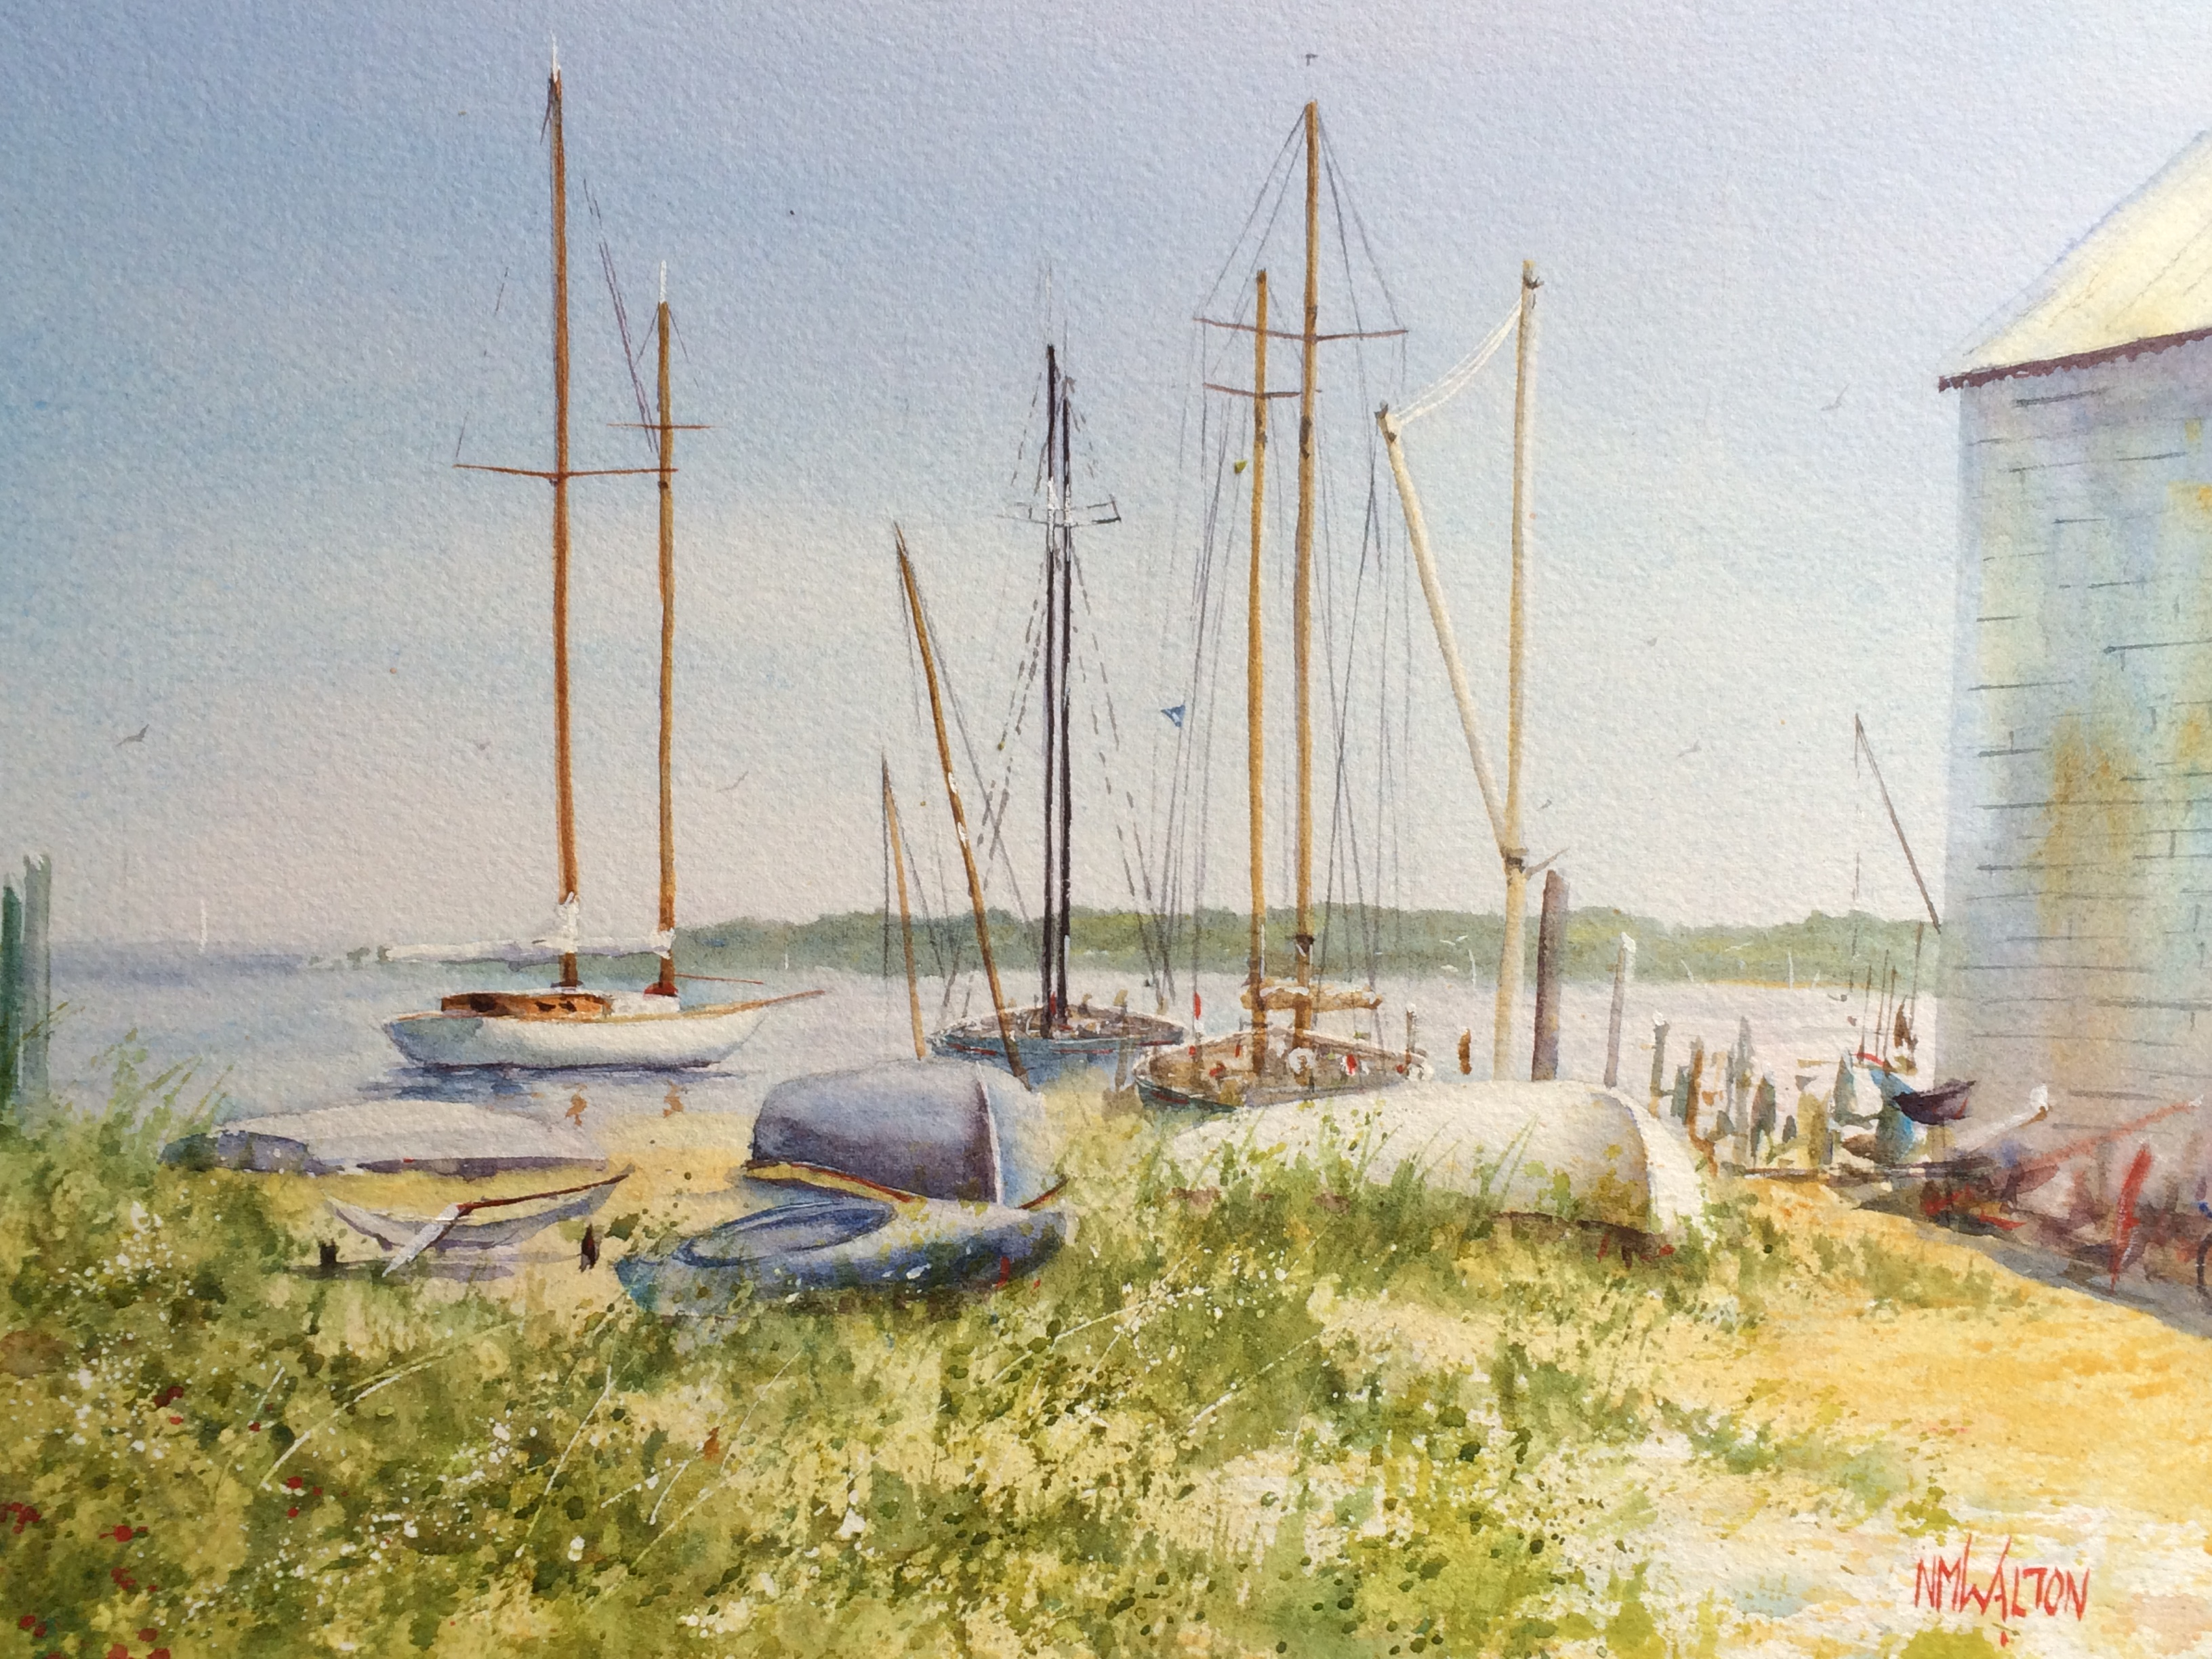 Vineyard Haven Boatyard